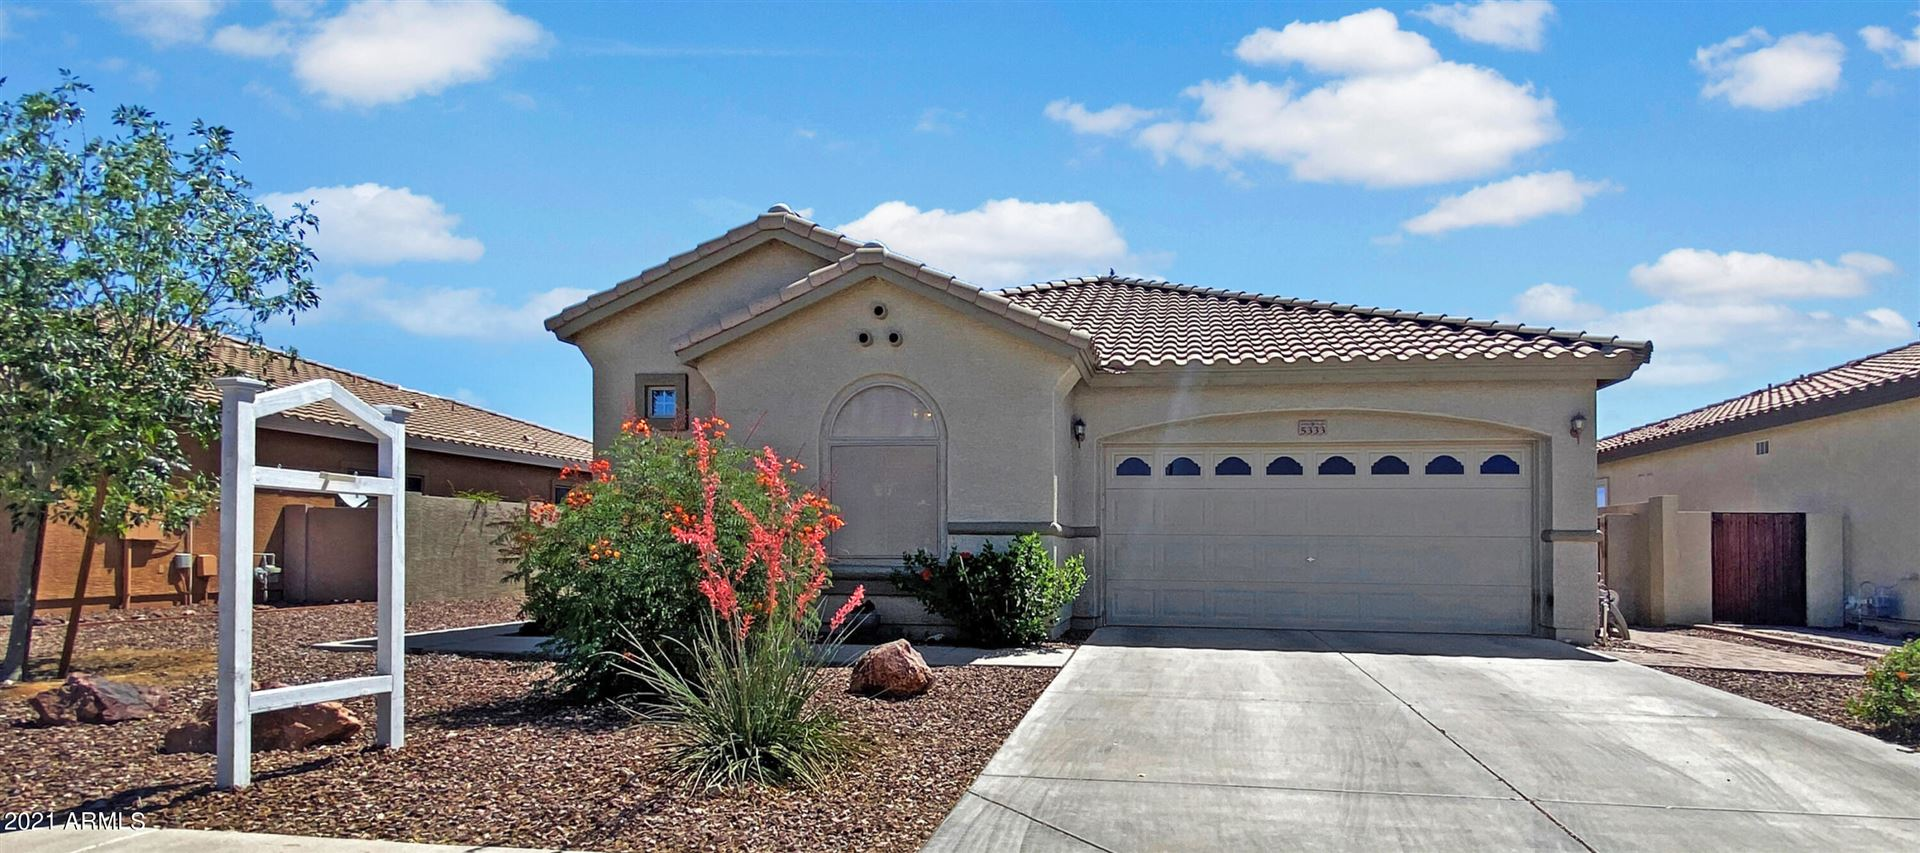 Photo of 5333 N 191ST Drive, Litchfield Park, AZ 85340 (MLS # 6229988)